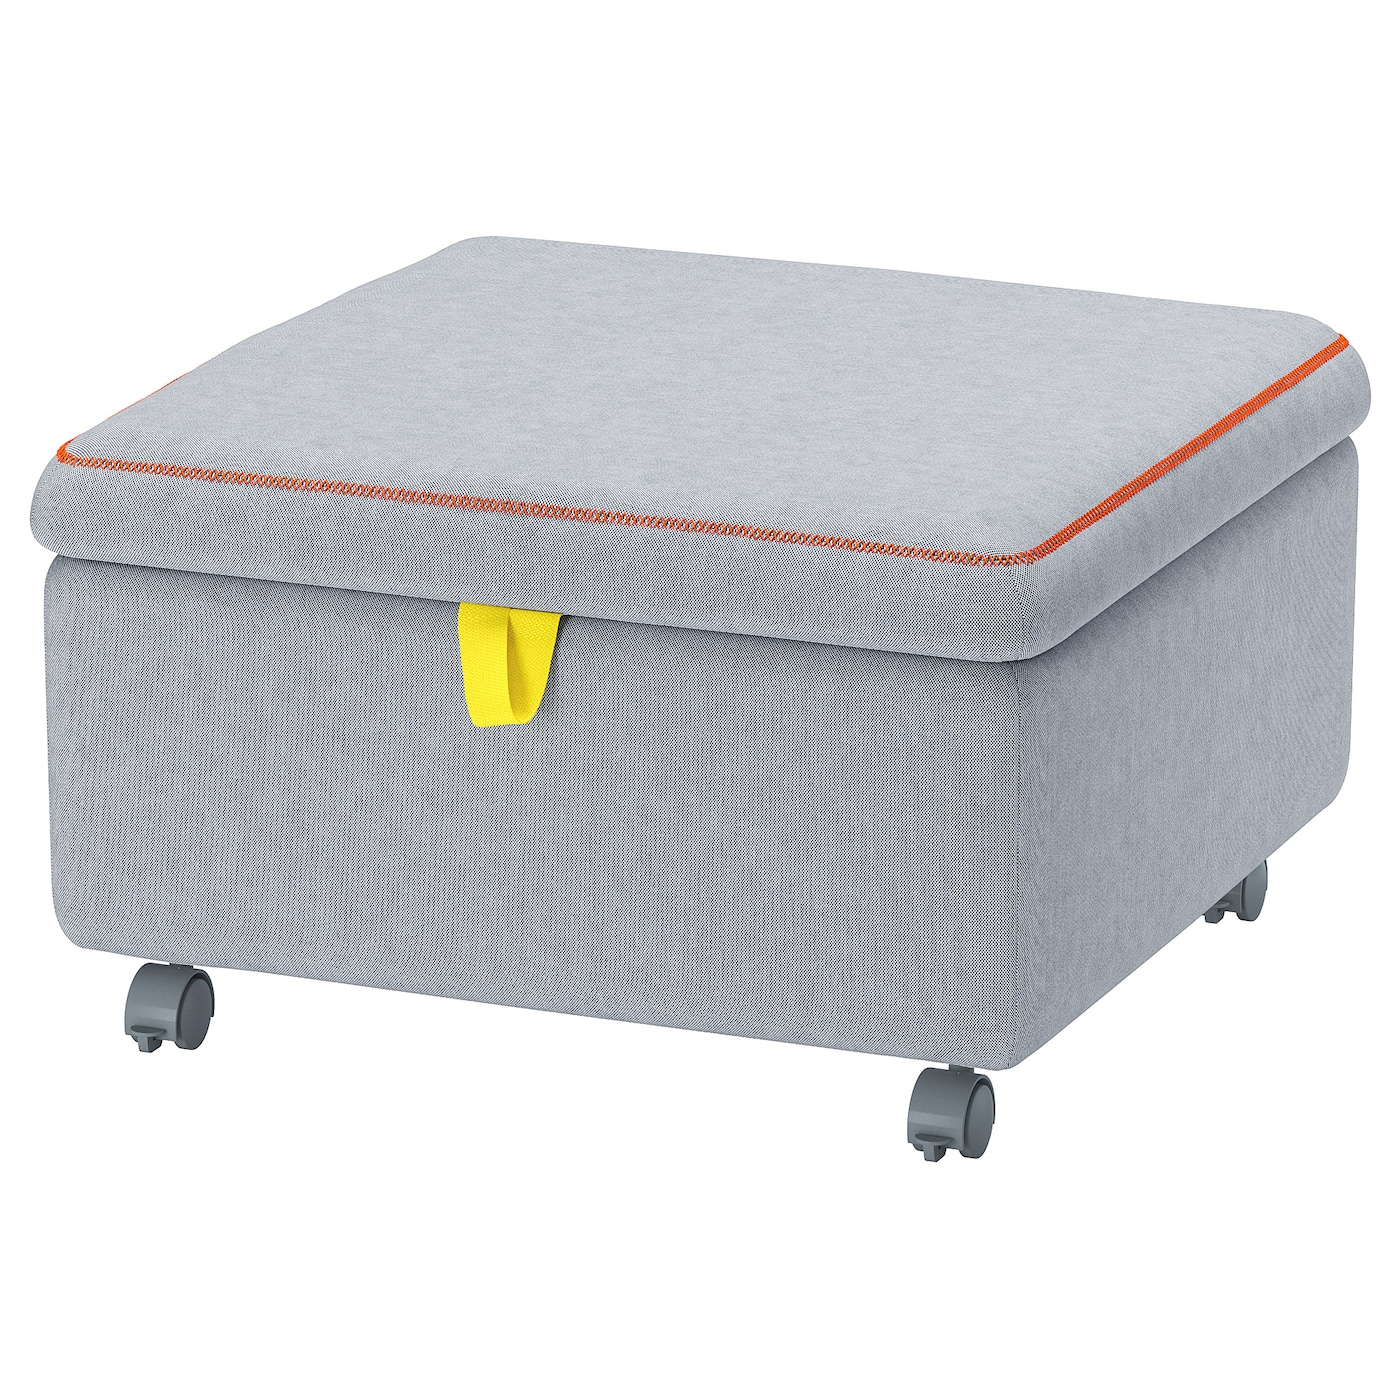 IKEA SLÄKT seat module with storage Practical storage space under the lid.